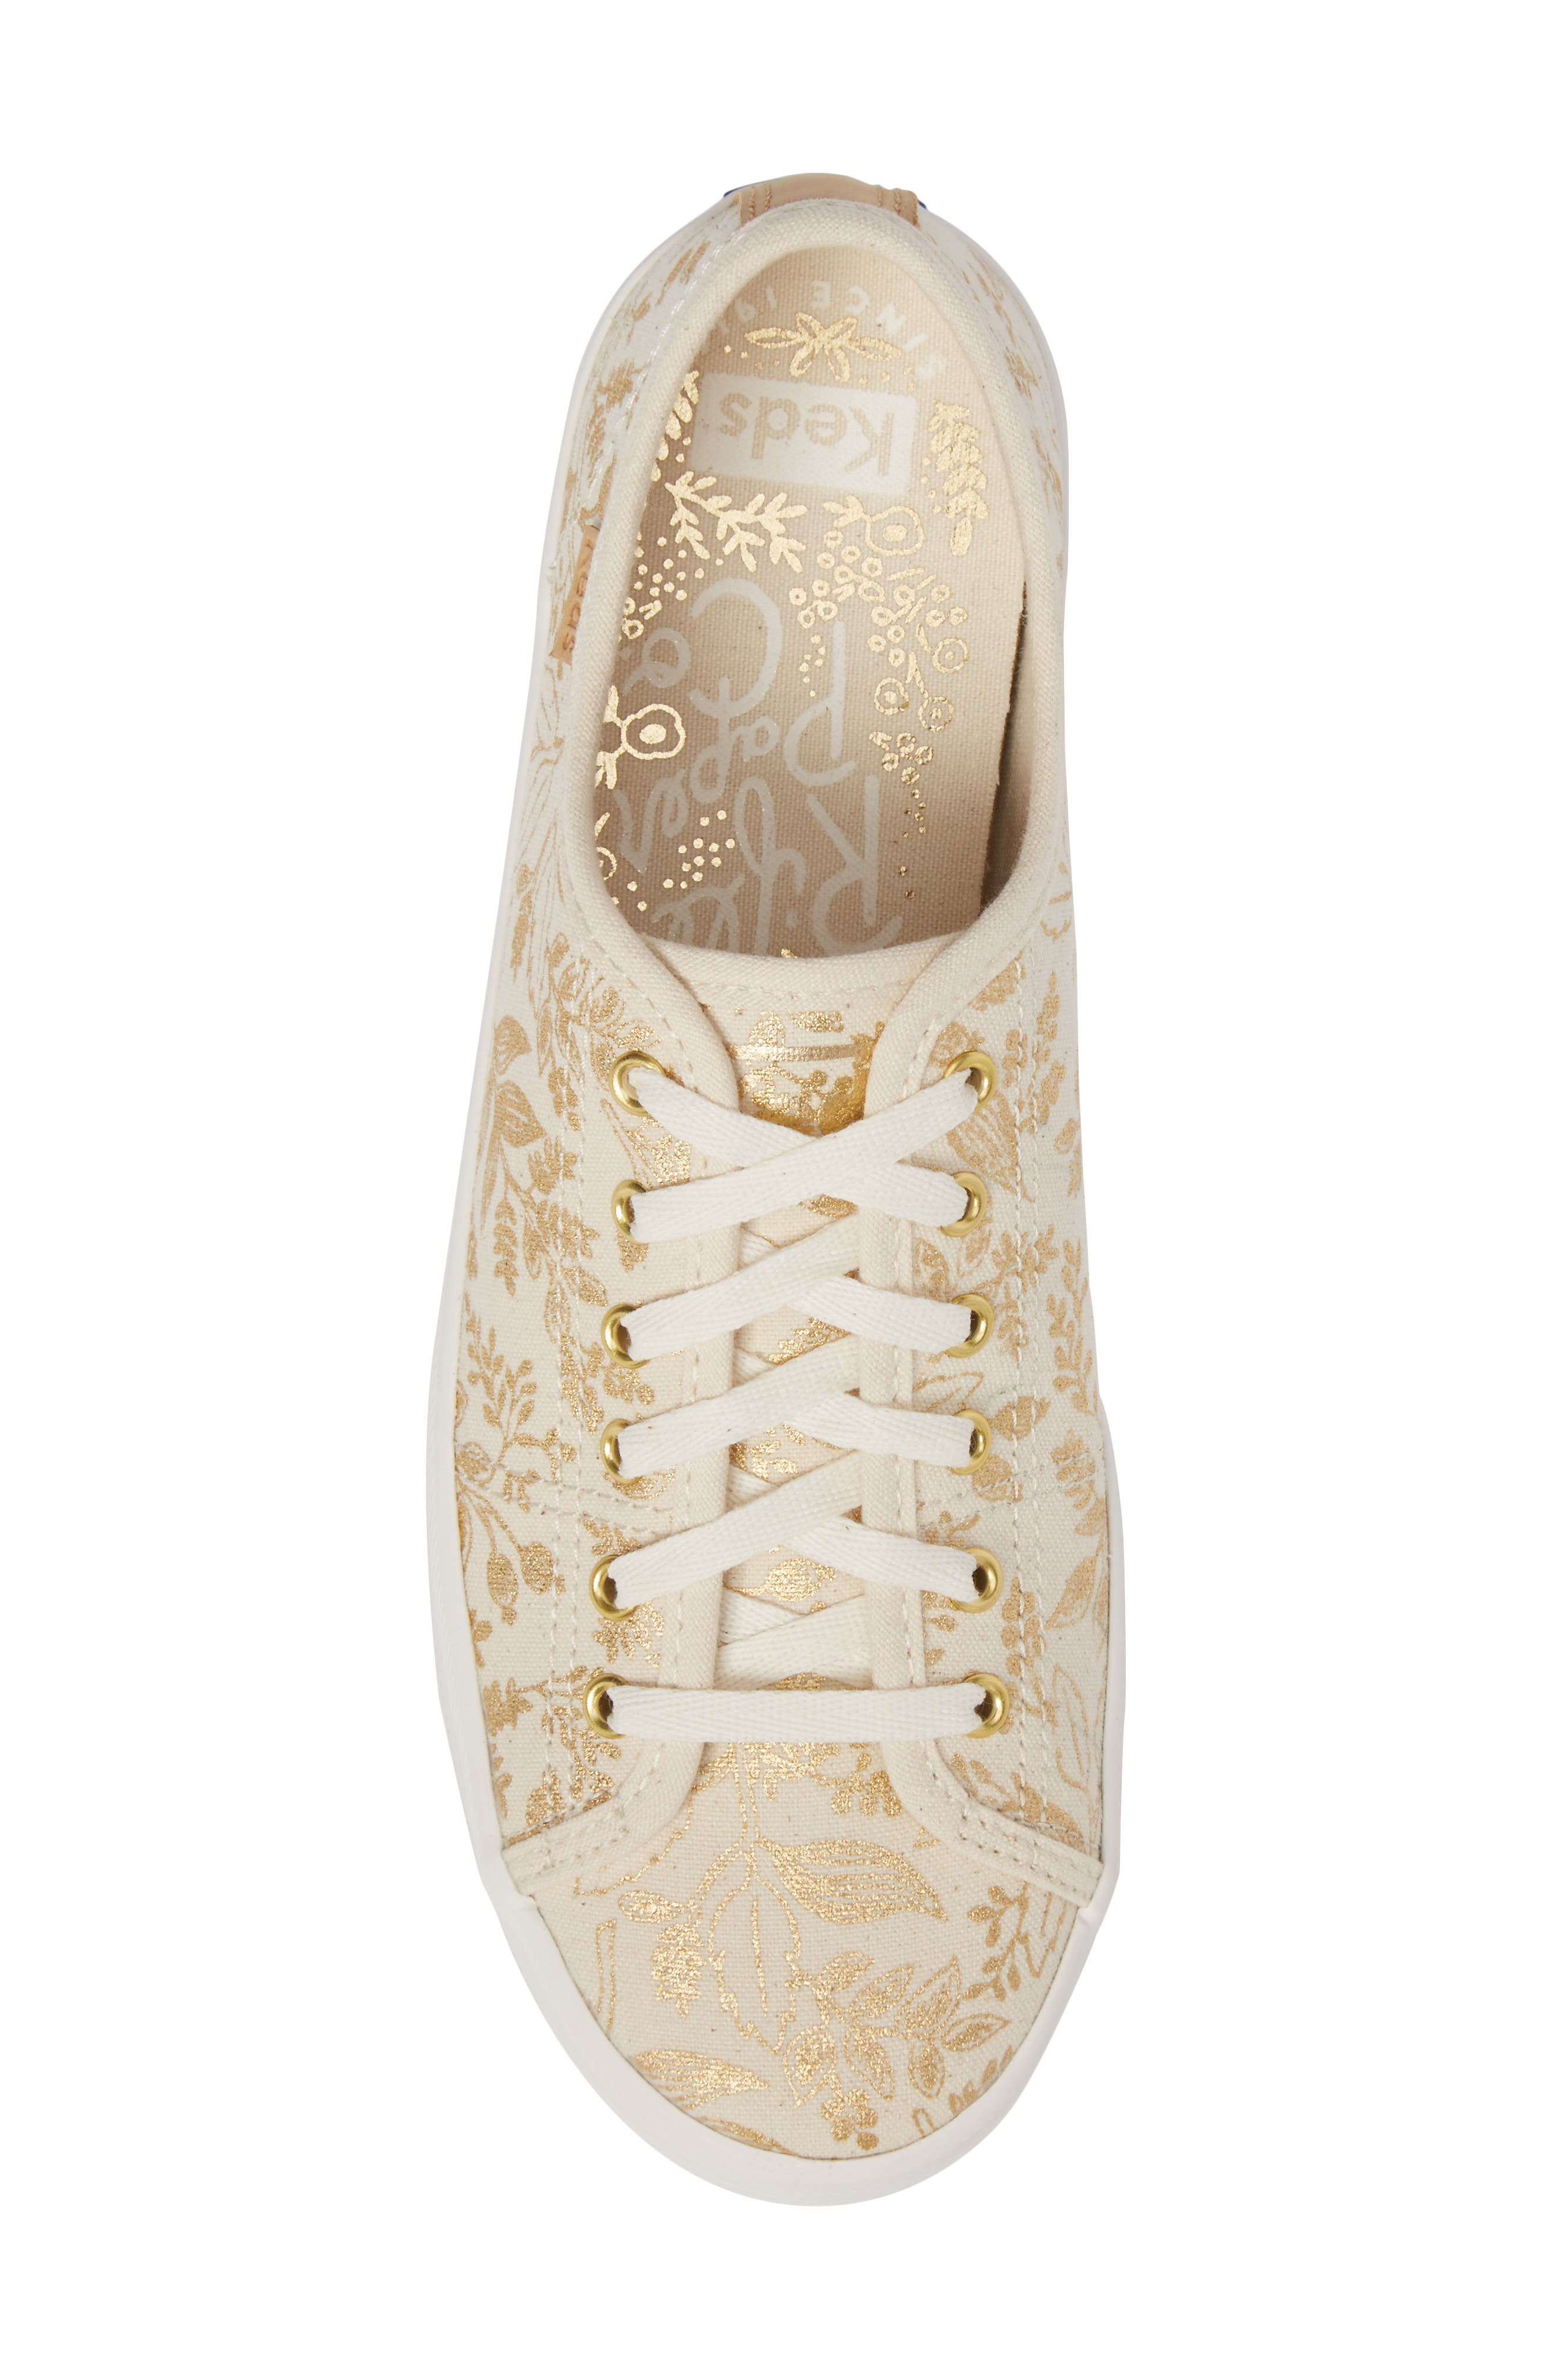 x Rifle Paper Co. Queen Anne Sneaker,                             Alternate thumbnail 5, color,                             Natural